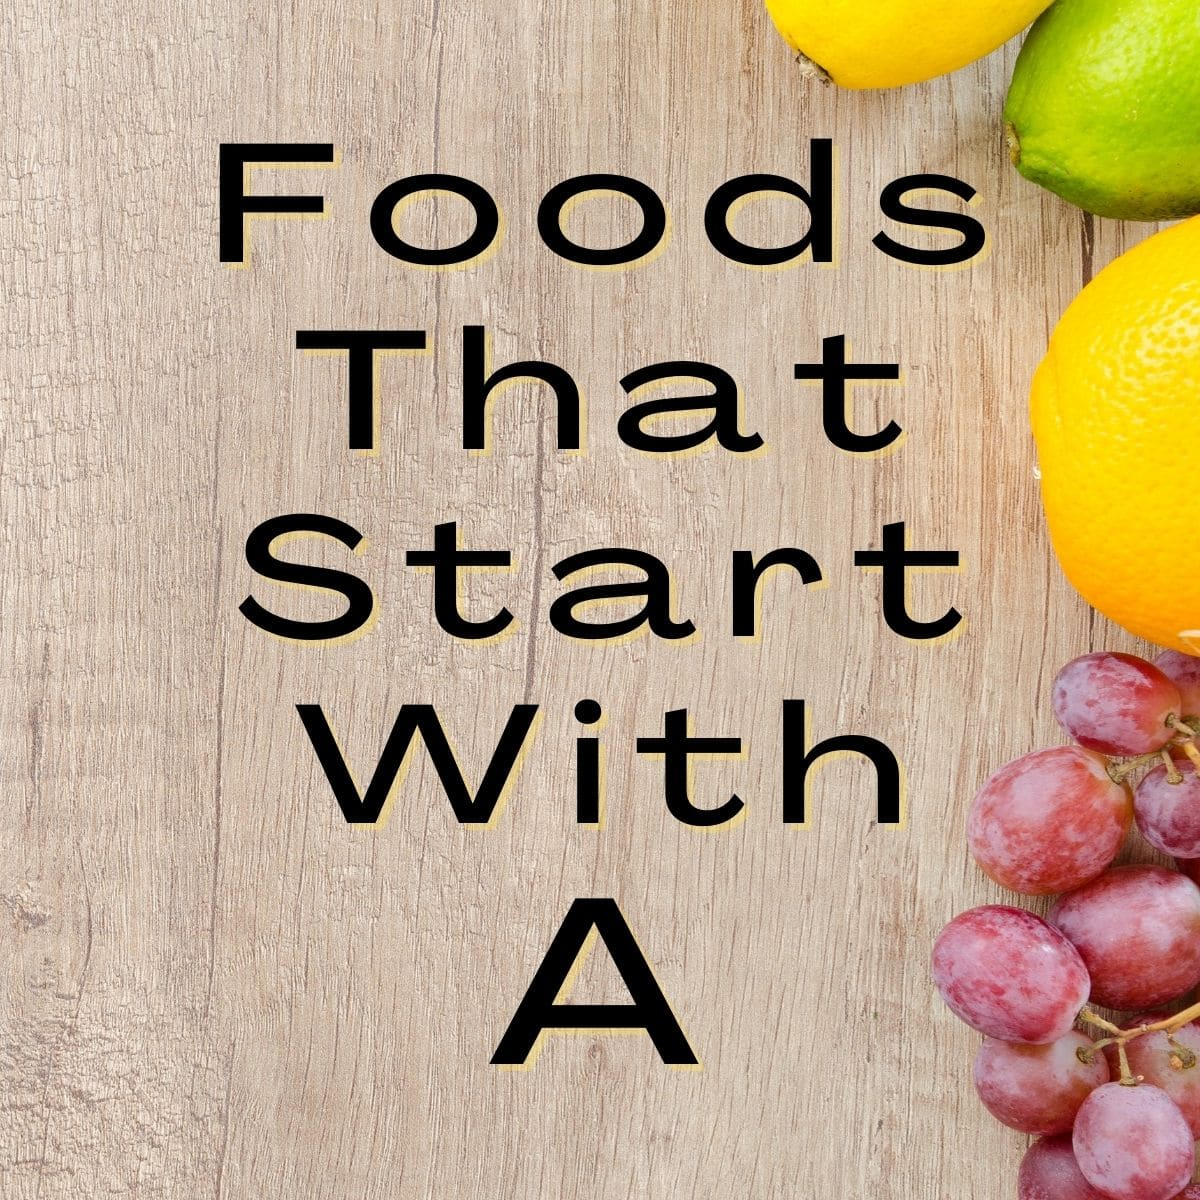 Foods that start with a in text on a wood grain background.